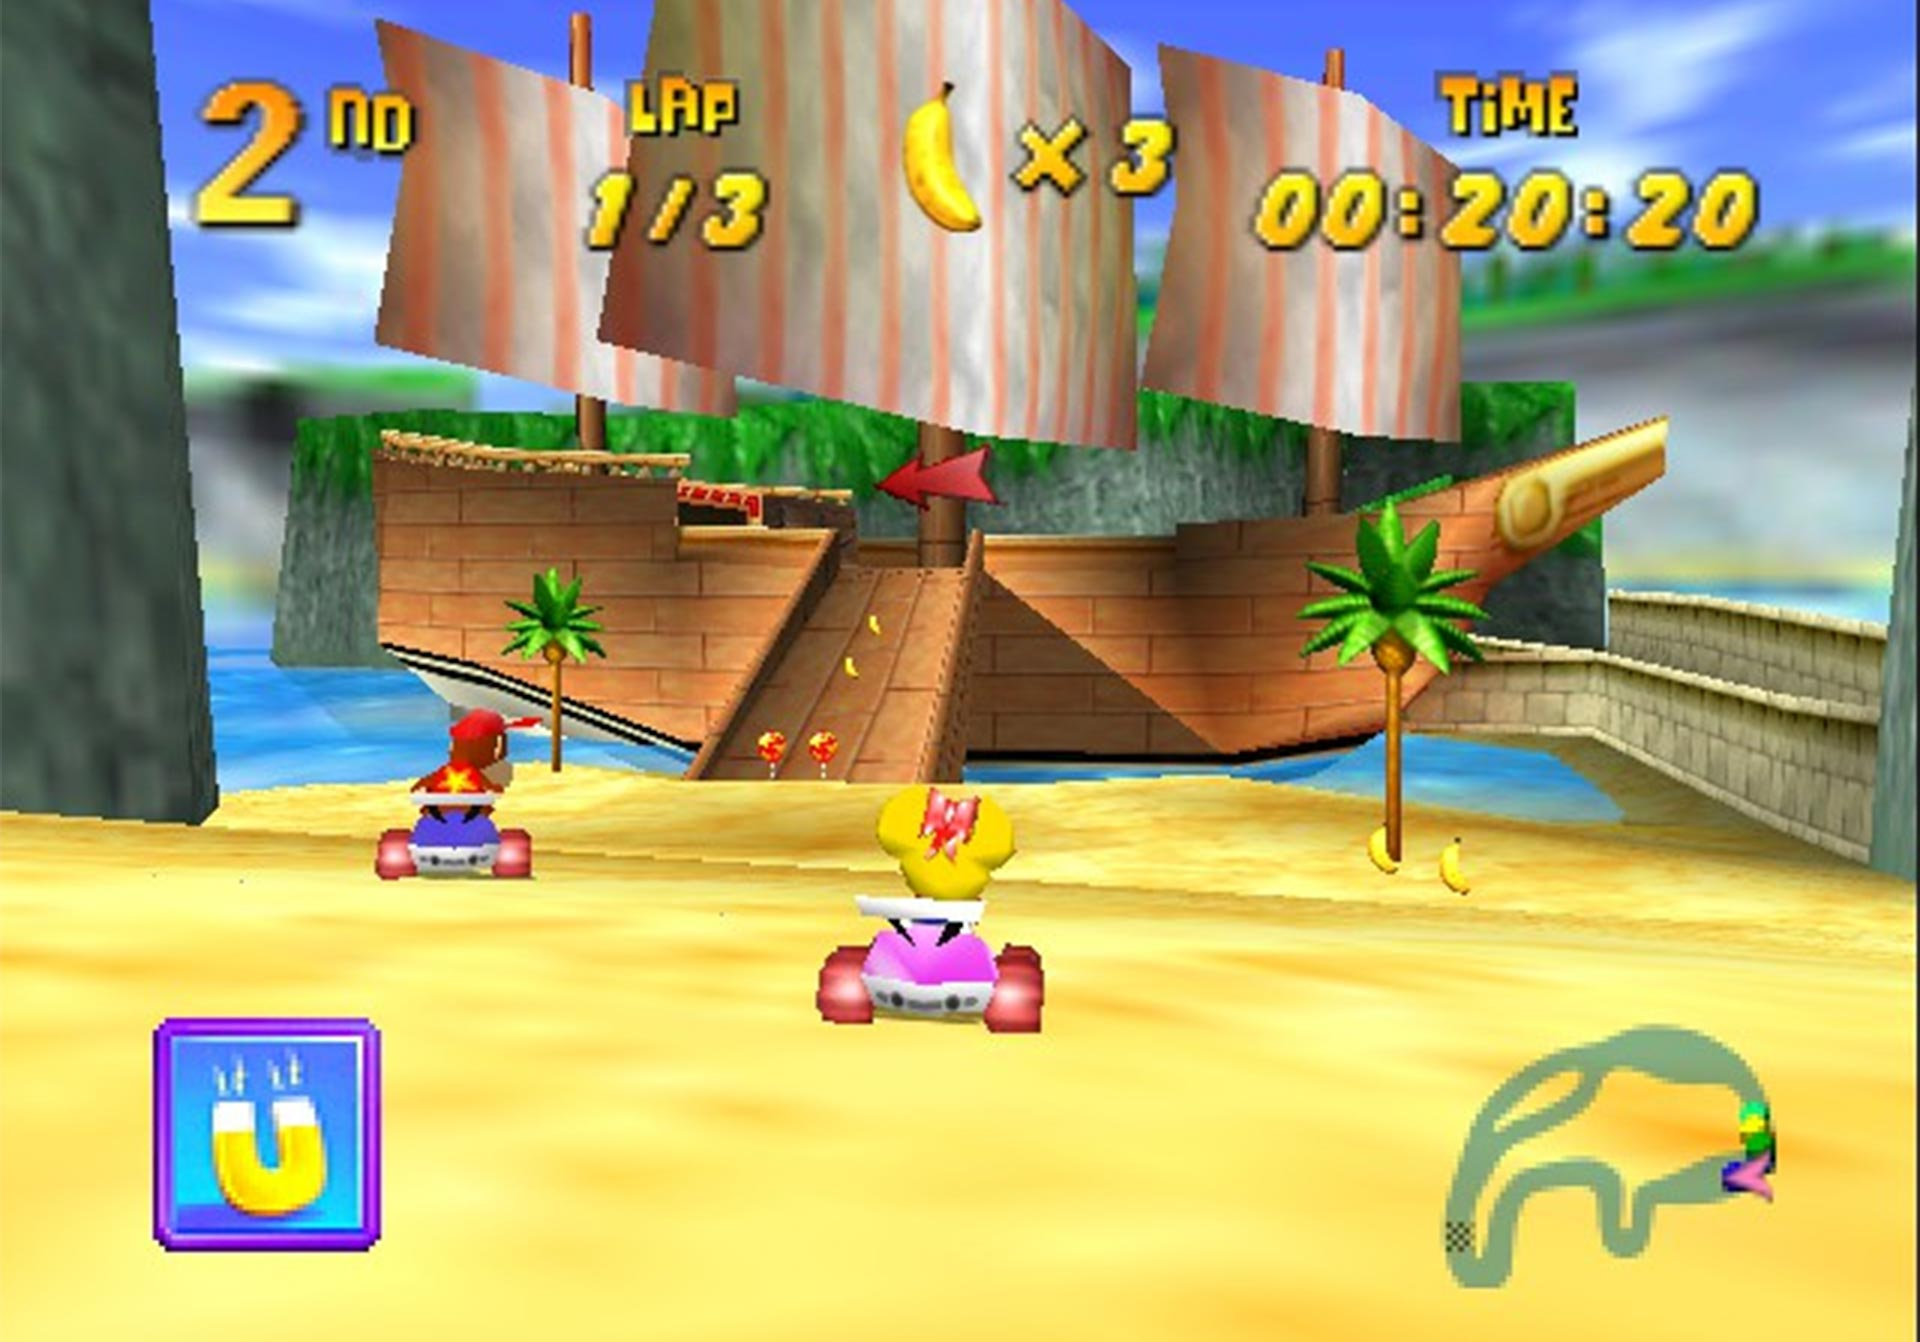 Pirate Lagoon from Diddy Kong Racing.